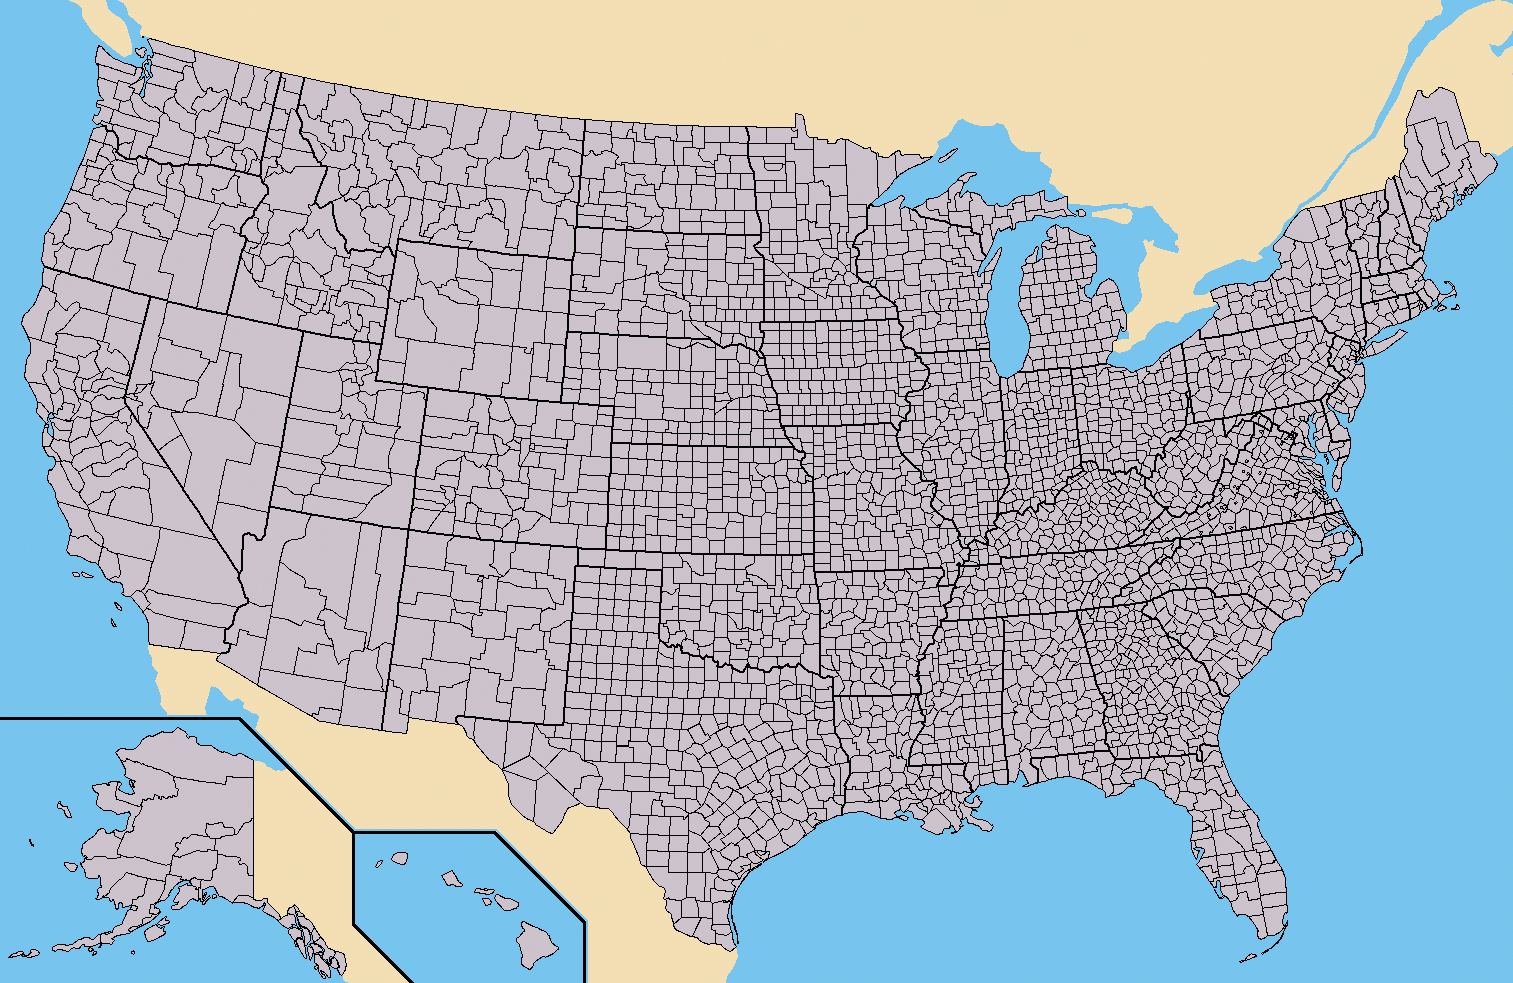 Image Map of USA with county outlinespng Implausable